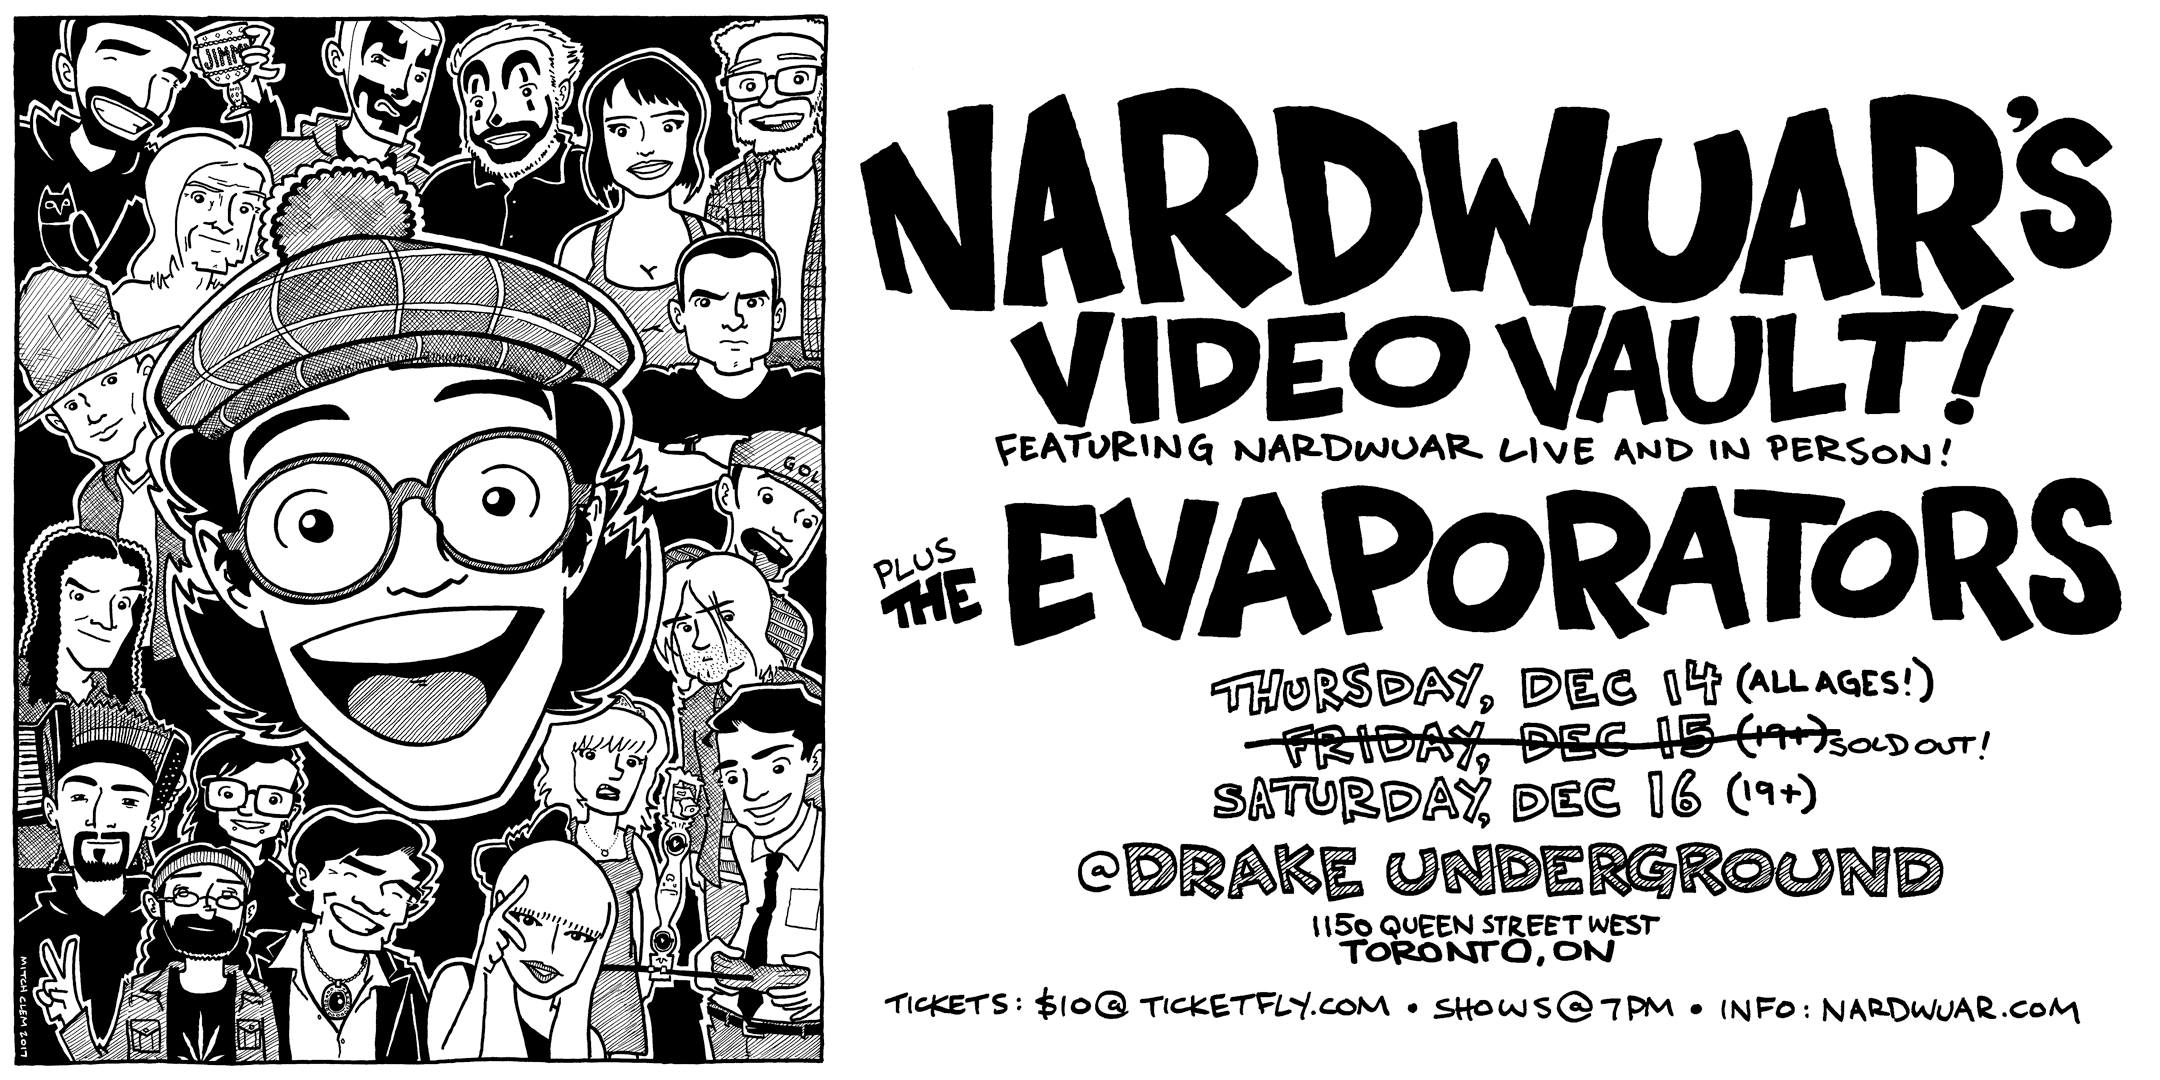 Nardwuar's Video Vault w The Evaporators @ The Drake Underground